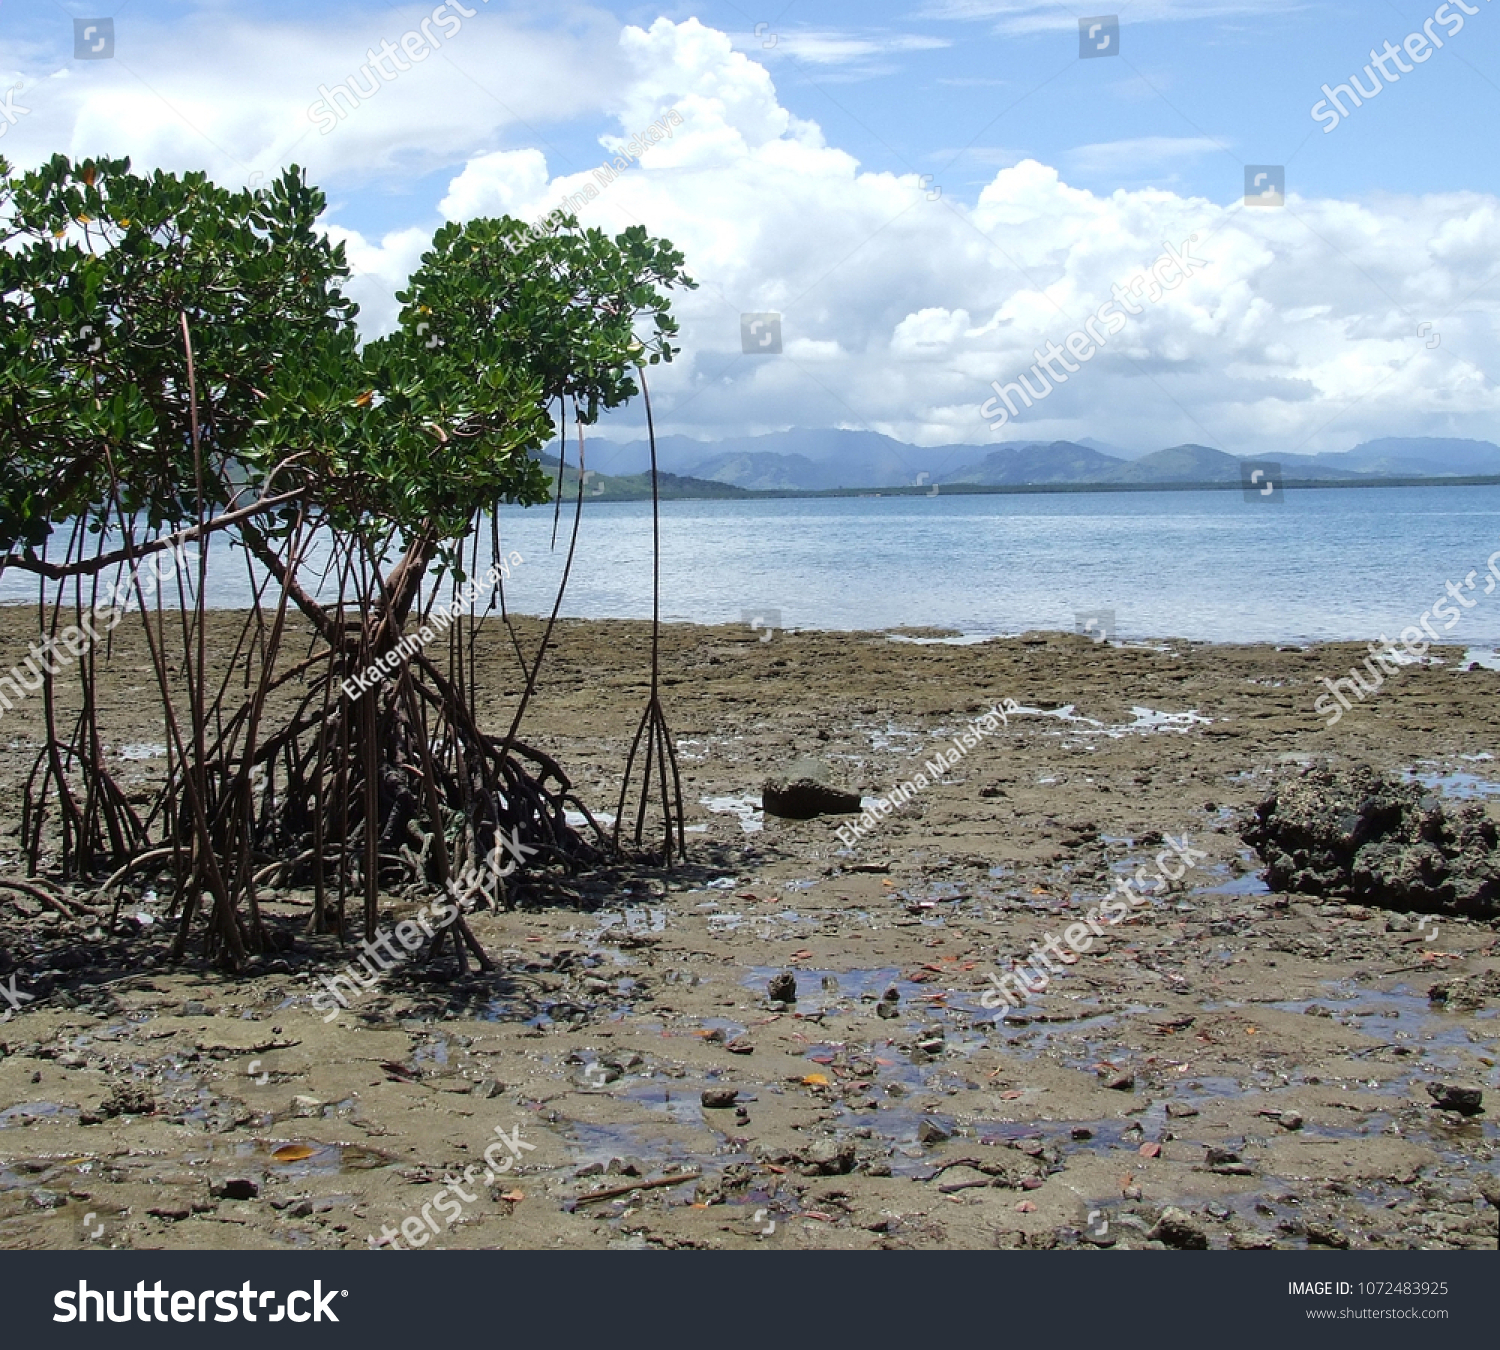 04b5fec0d54fb3 Vorovoro island, Macuata province, Fiji - October 2007: Mangrove trees with  aerial roots